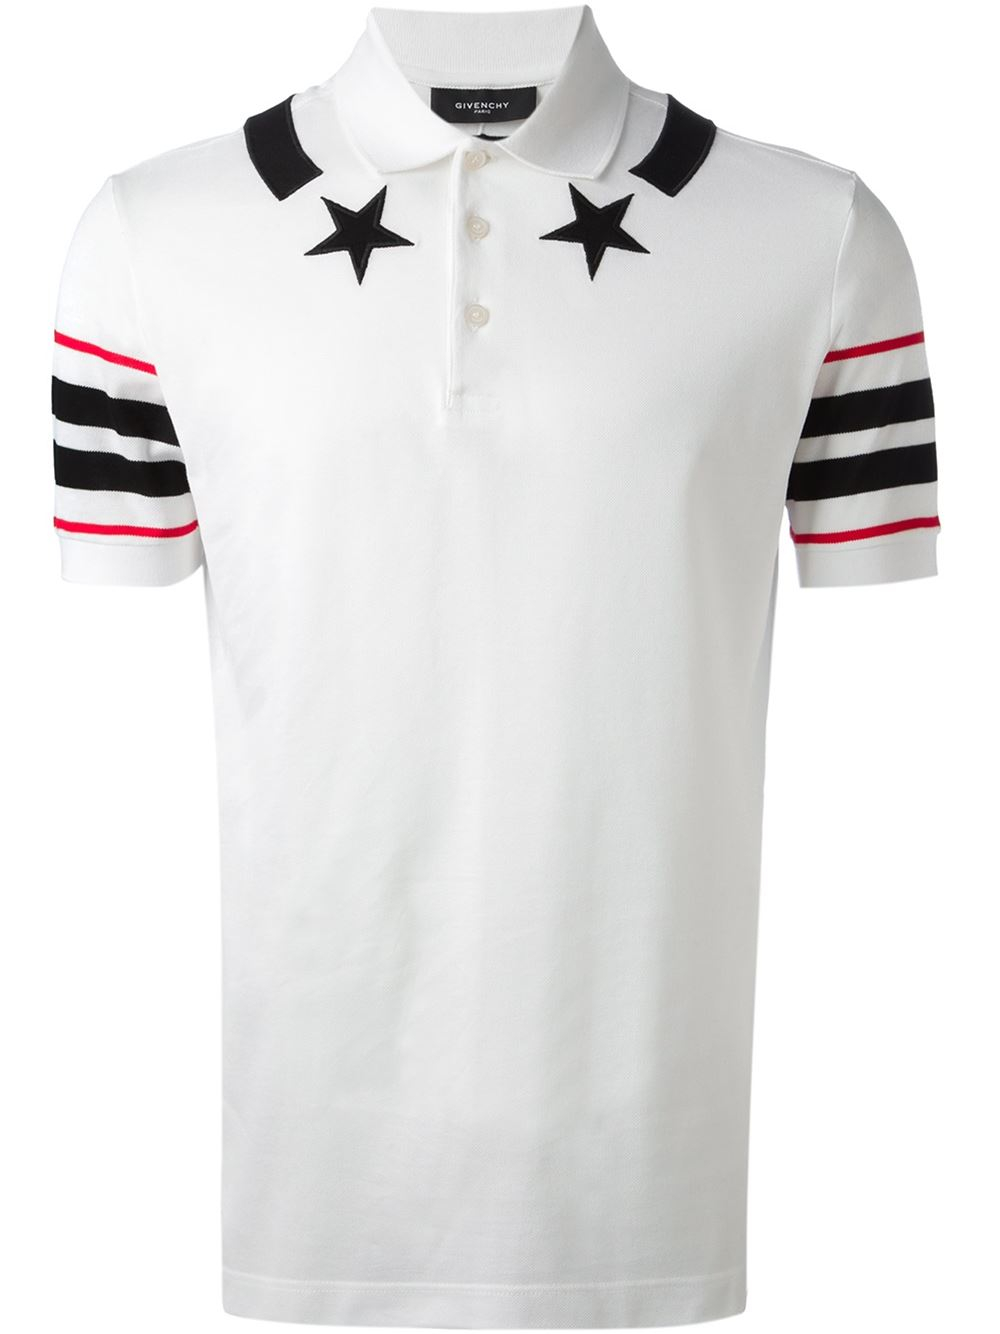 Givenchy star detail tshirt in white for men lyst for Givenchy t shirt man